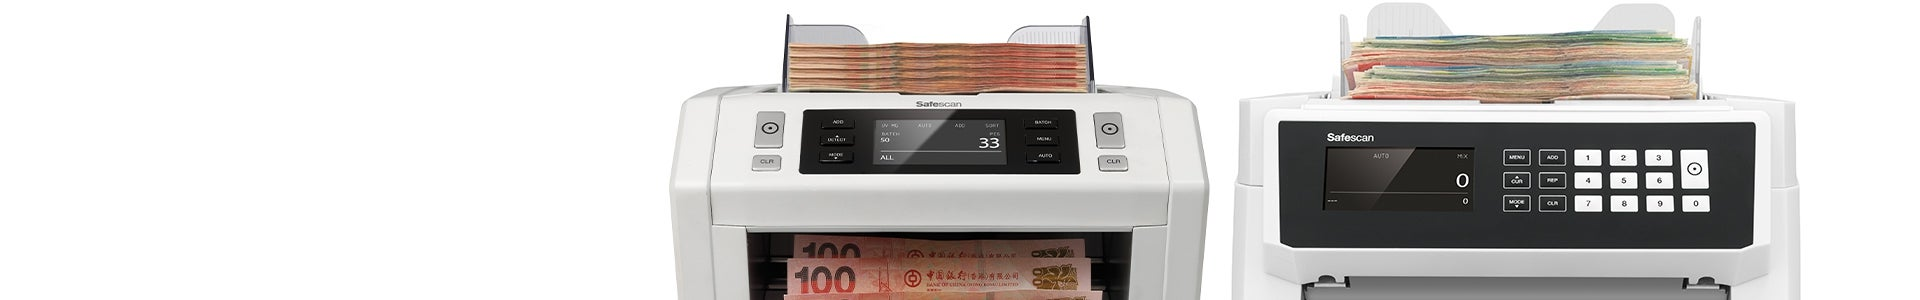 Banknote Counters - 01